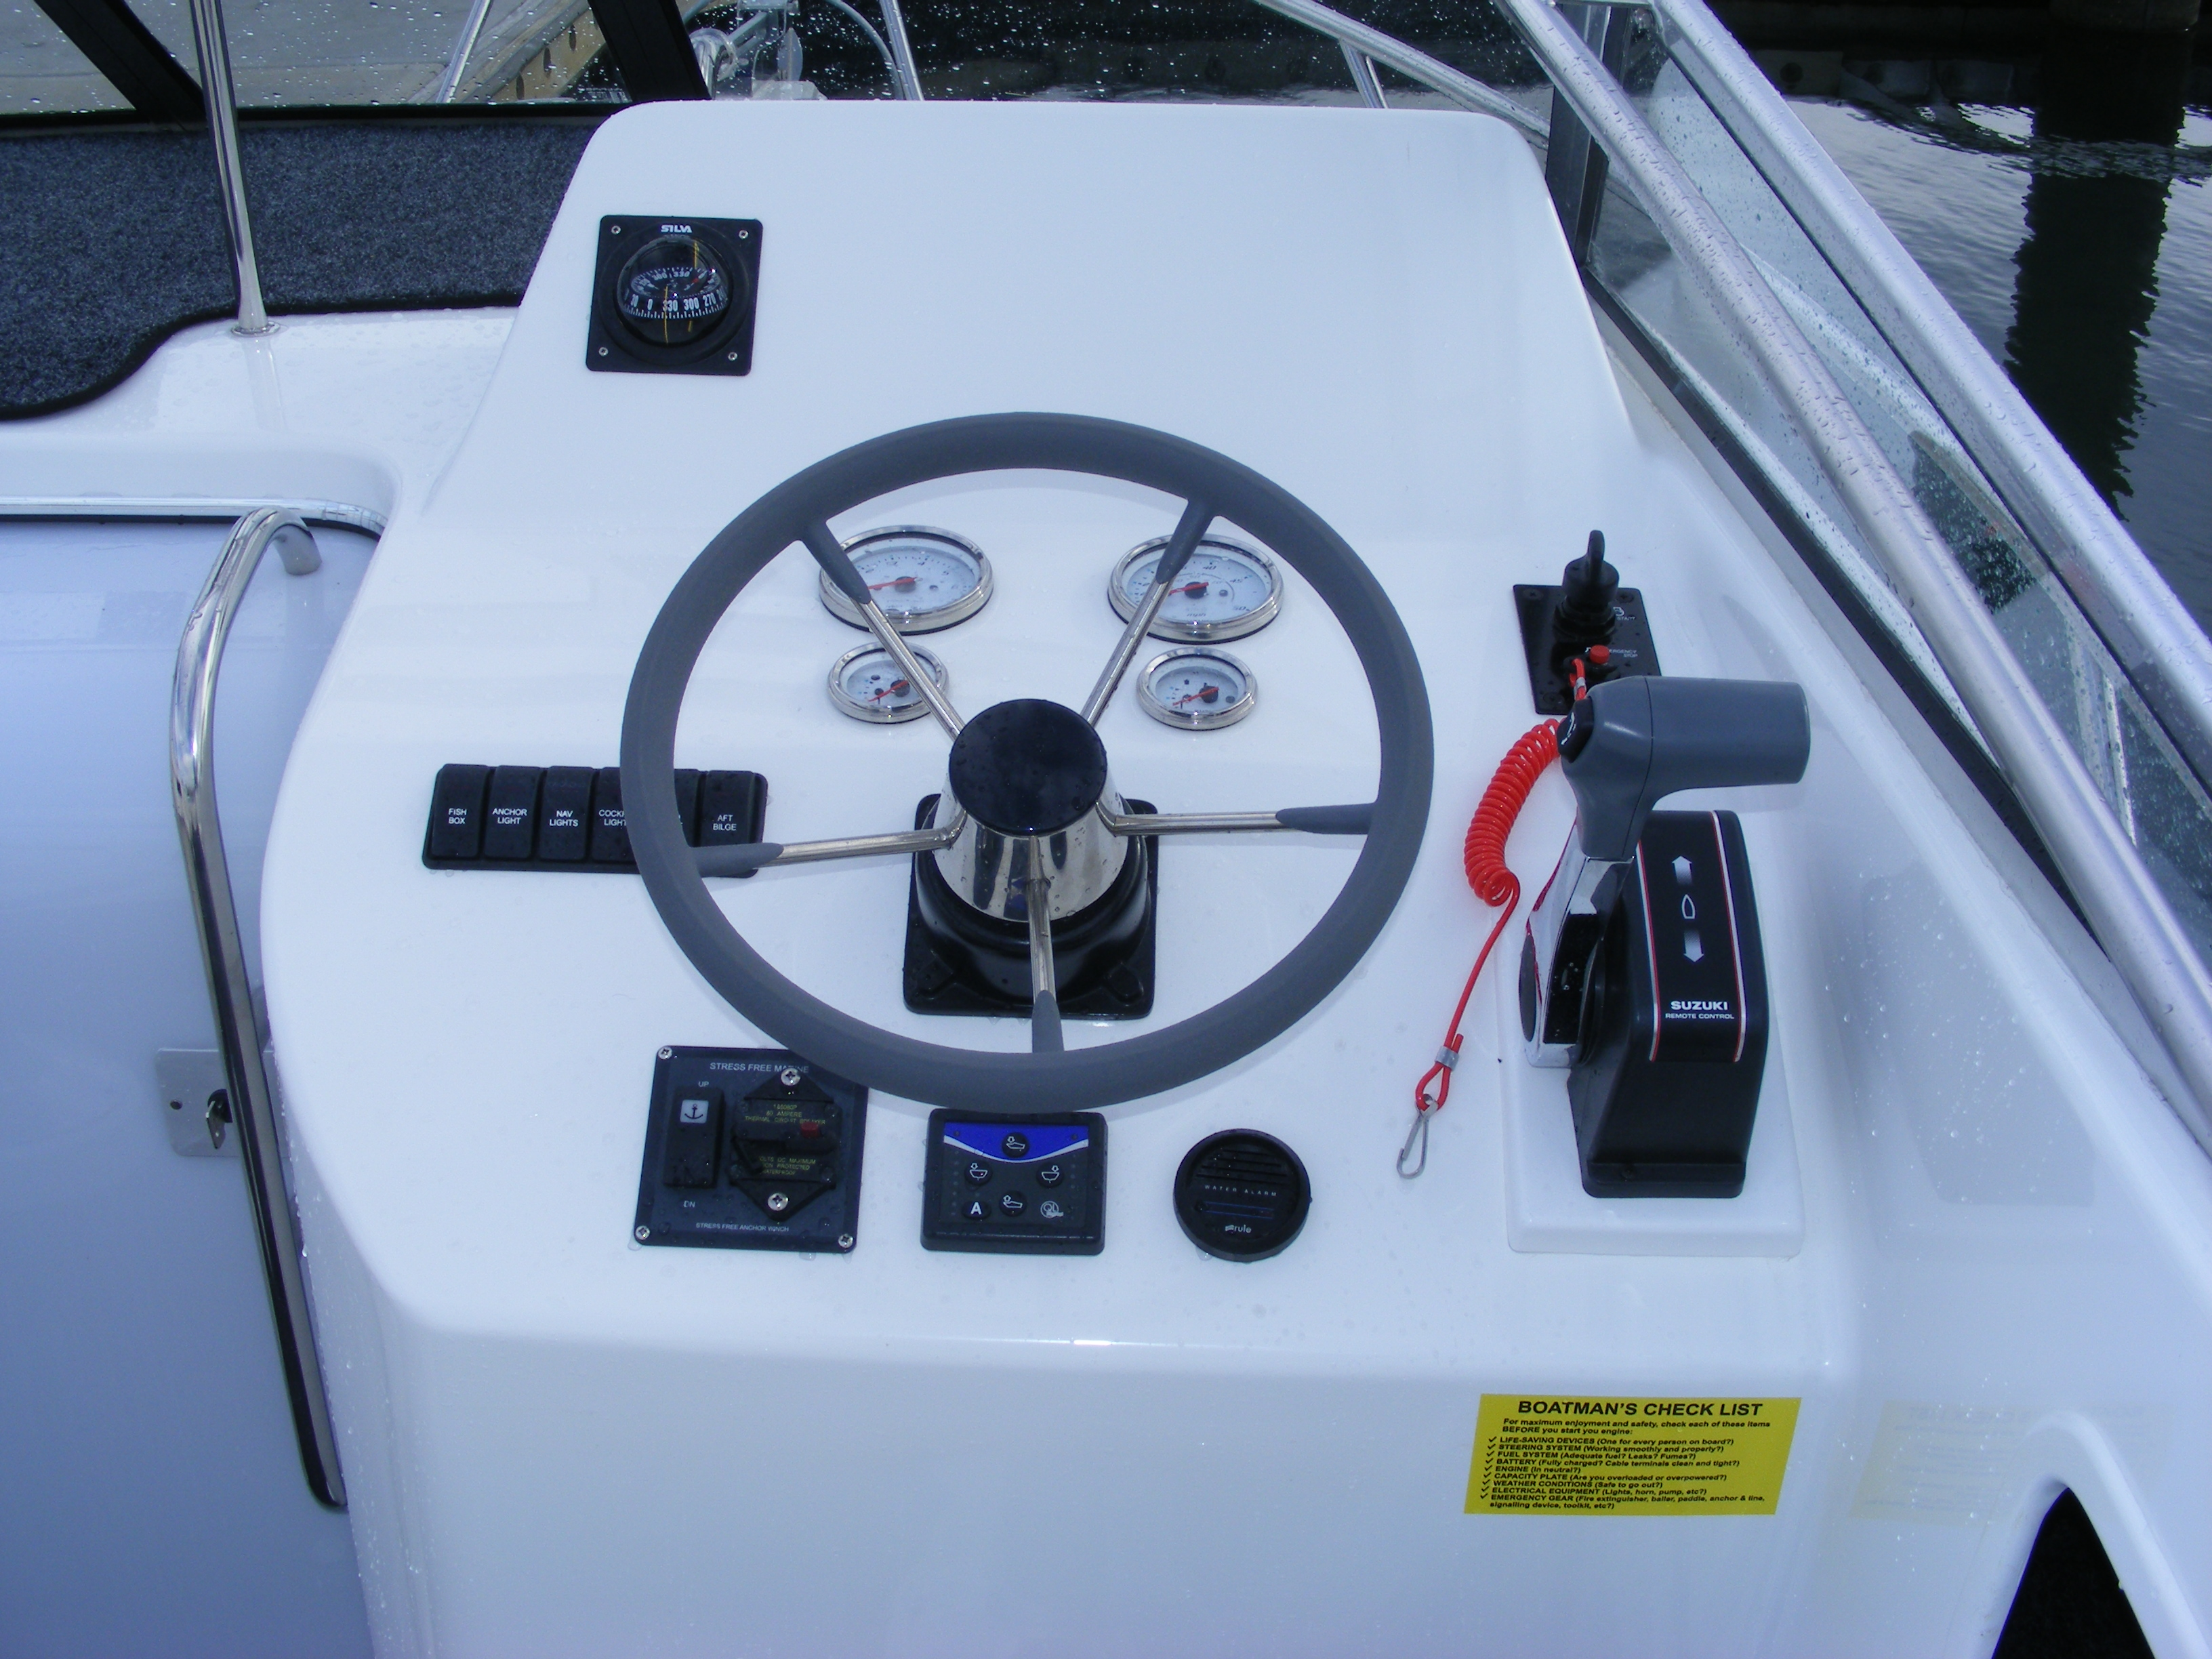 Coastal Bimini helm station